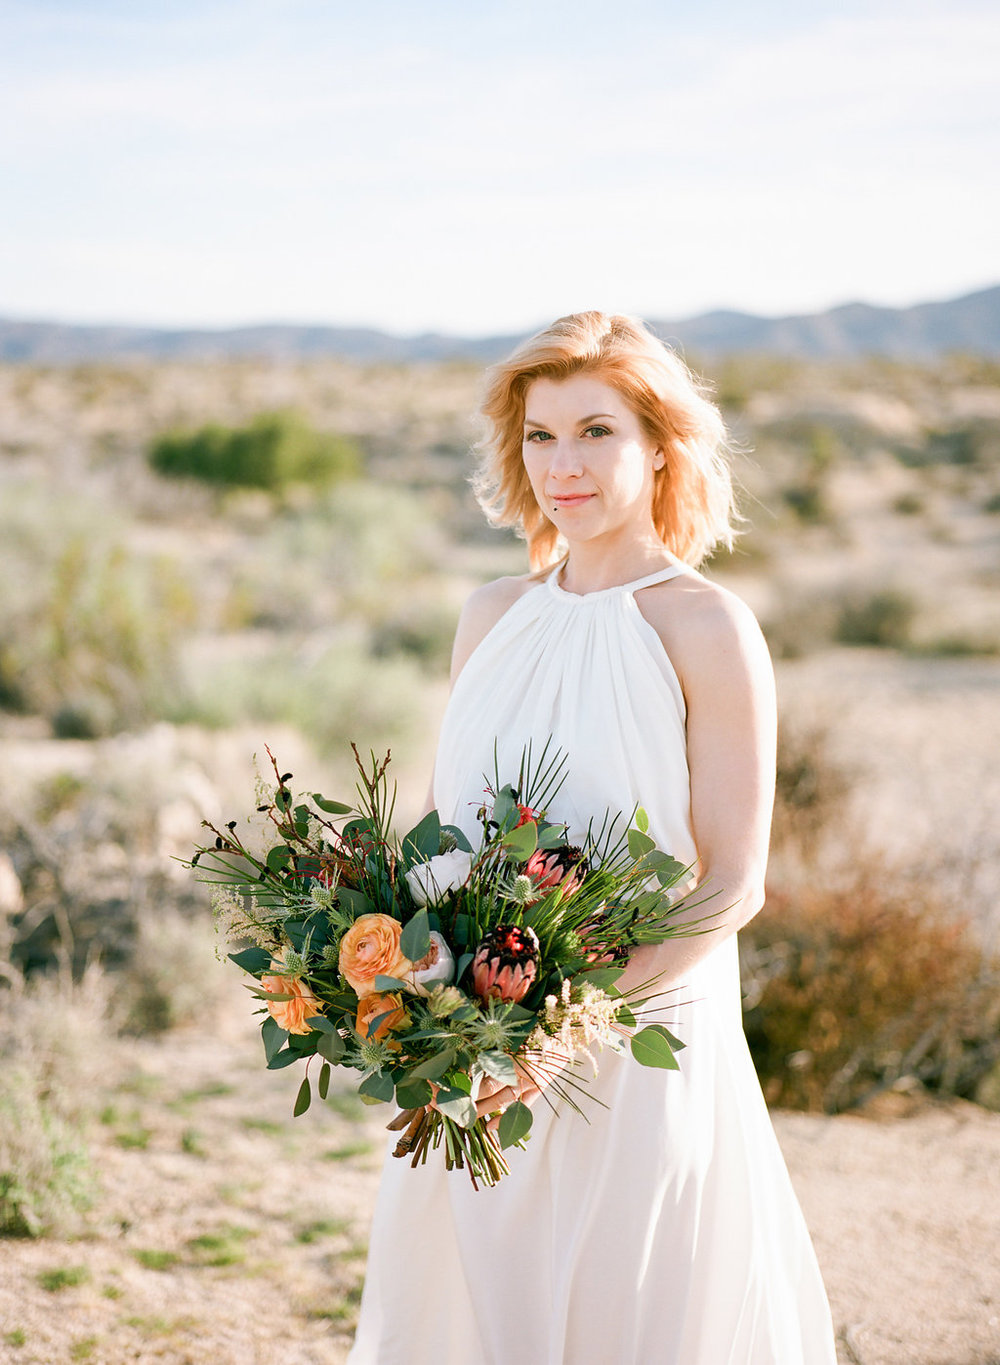 Jessica Schilling Wedding Photography woman with bouquet